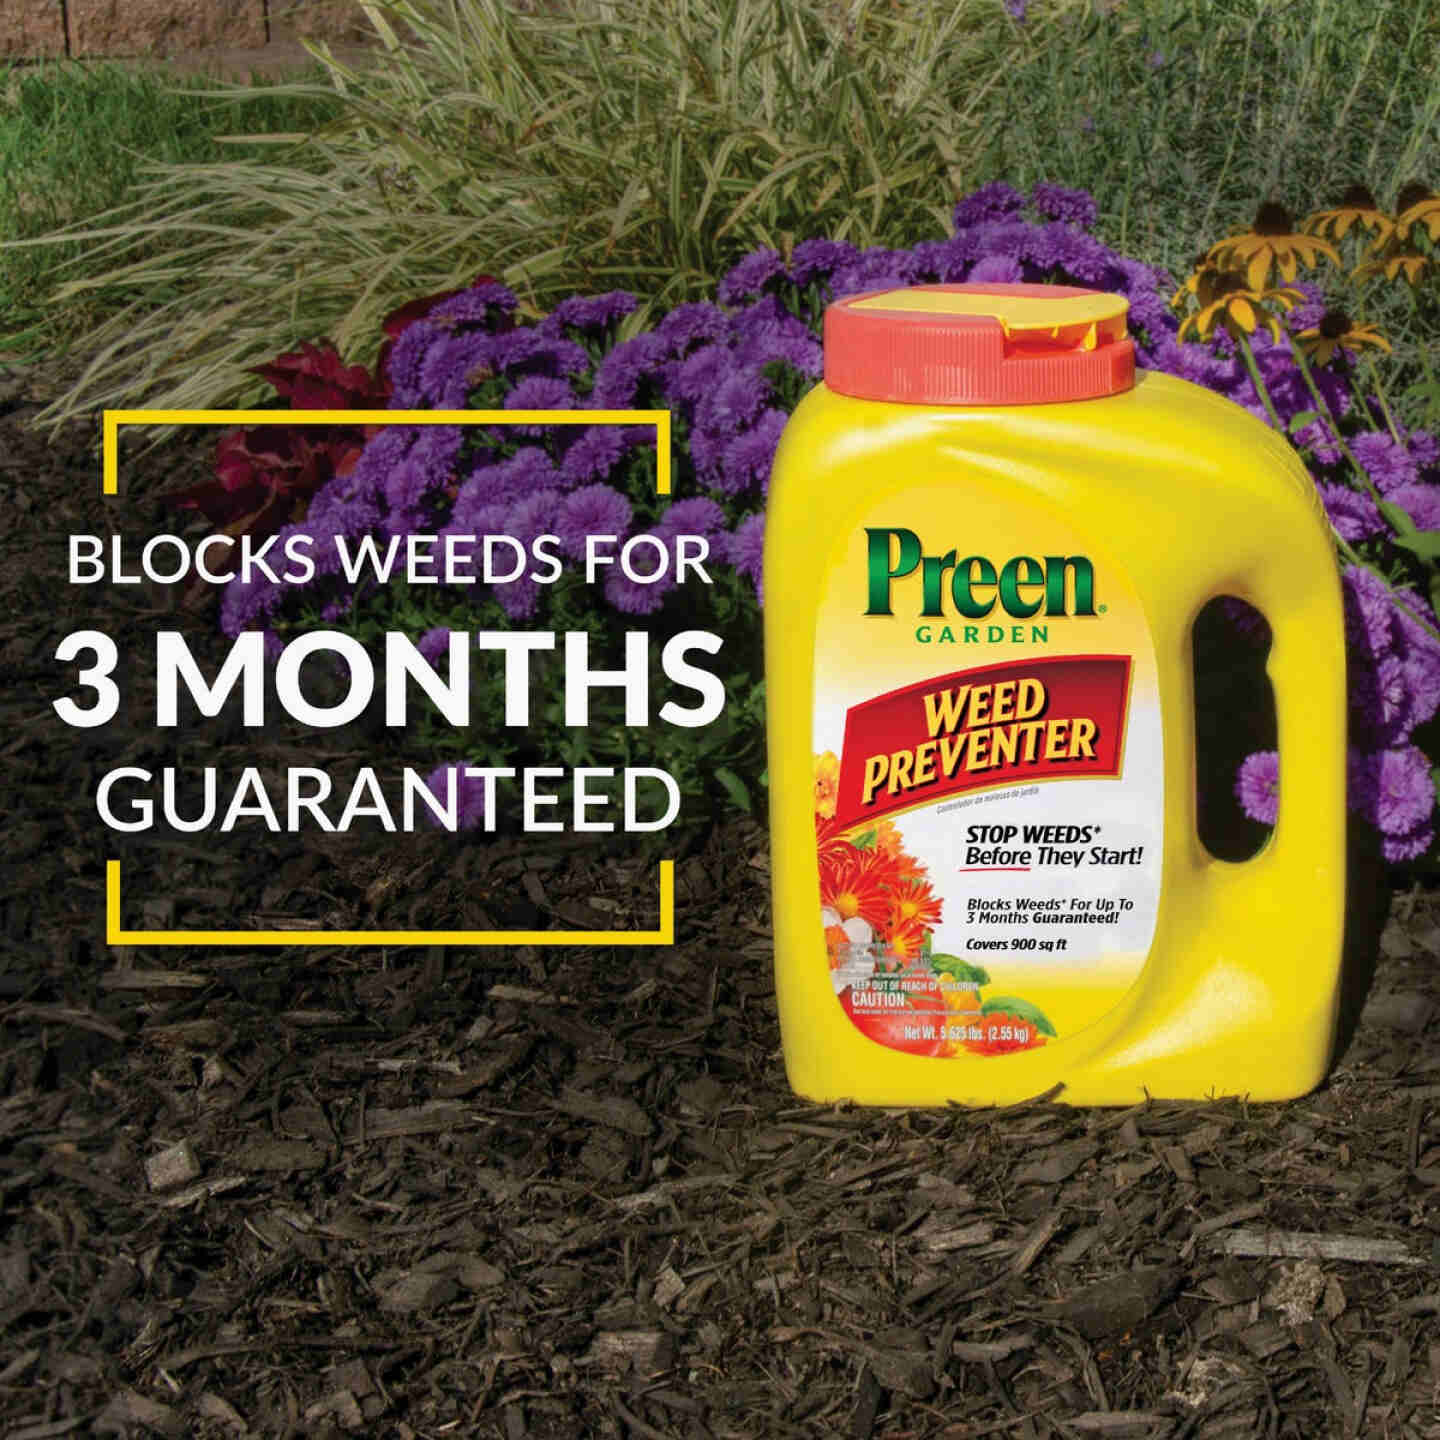 Preen 5.625 Lb. Ready To Use Granules Garden Weed Preventer Image 8